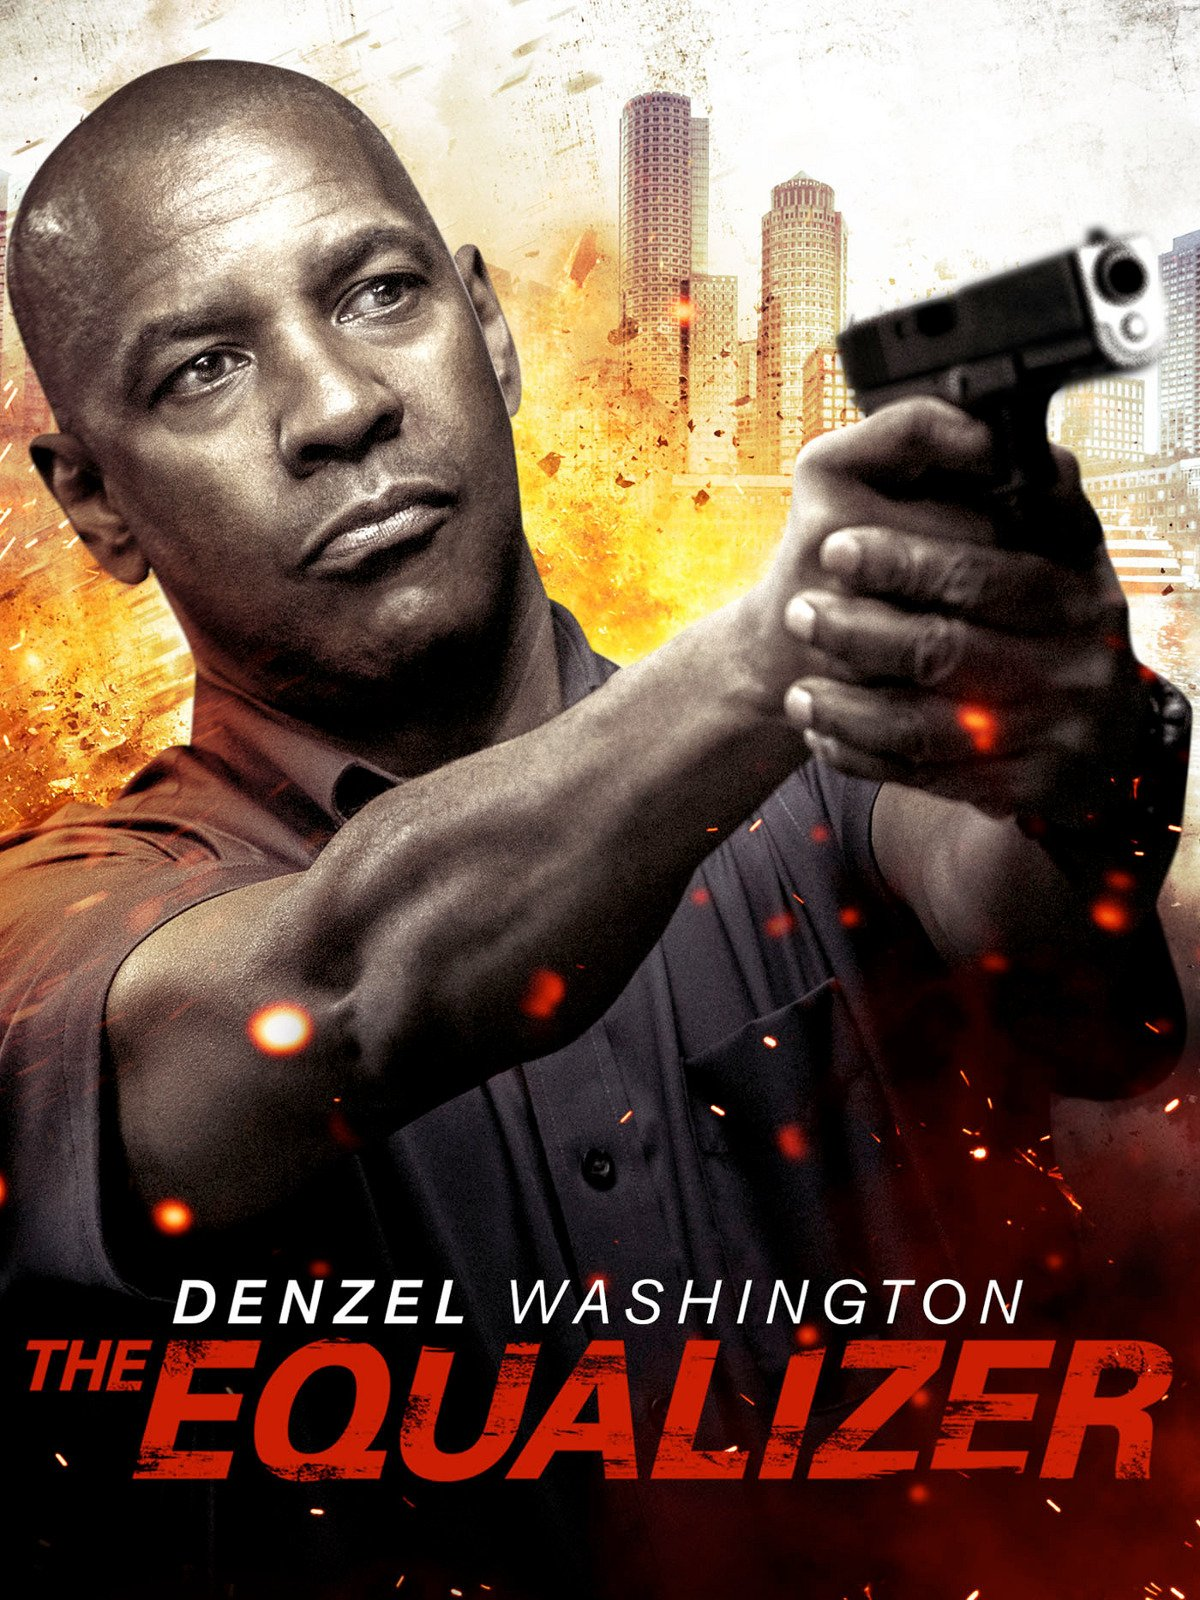 watch the equalizer (4k uhd) prime video The Equalizer TV Show